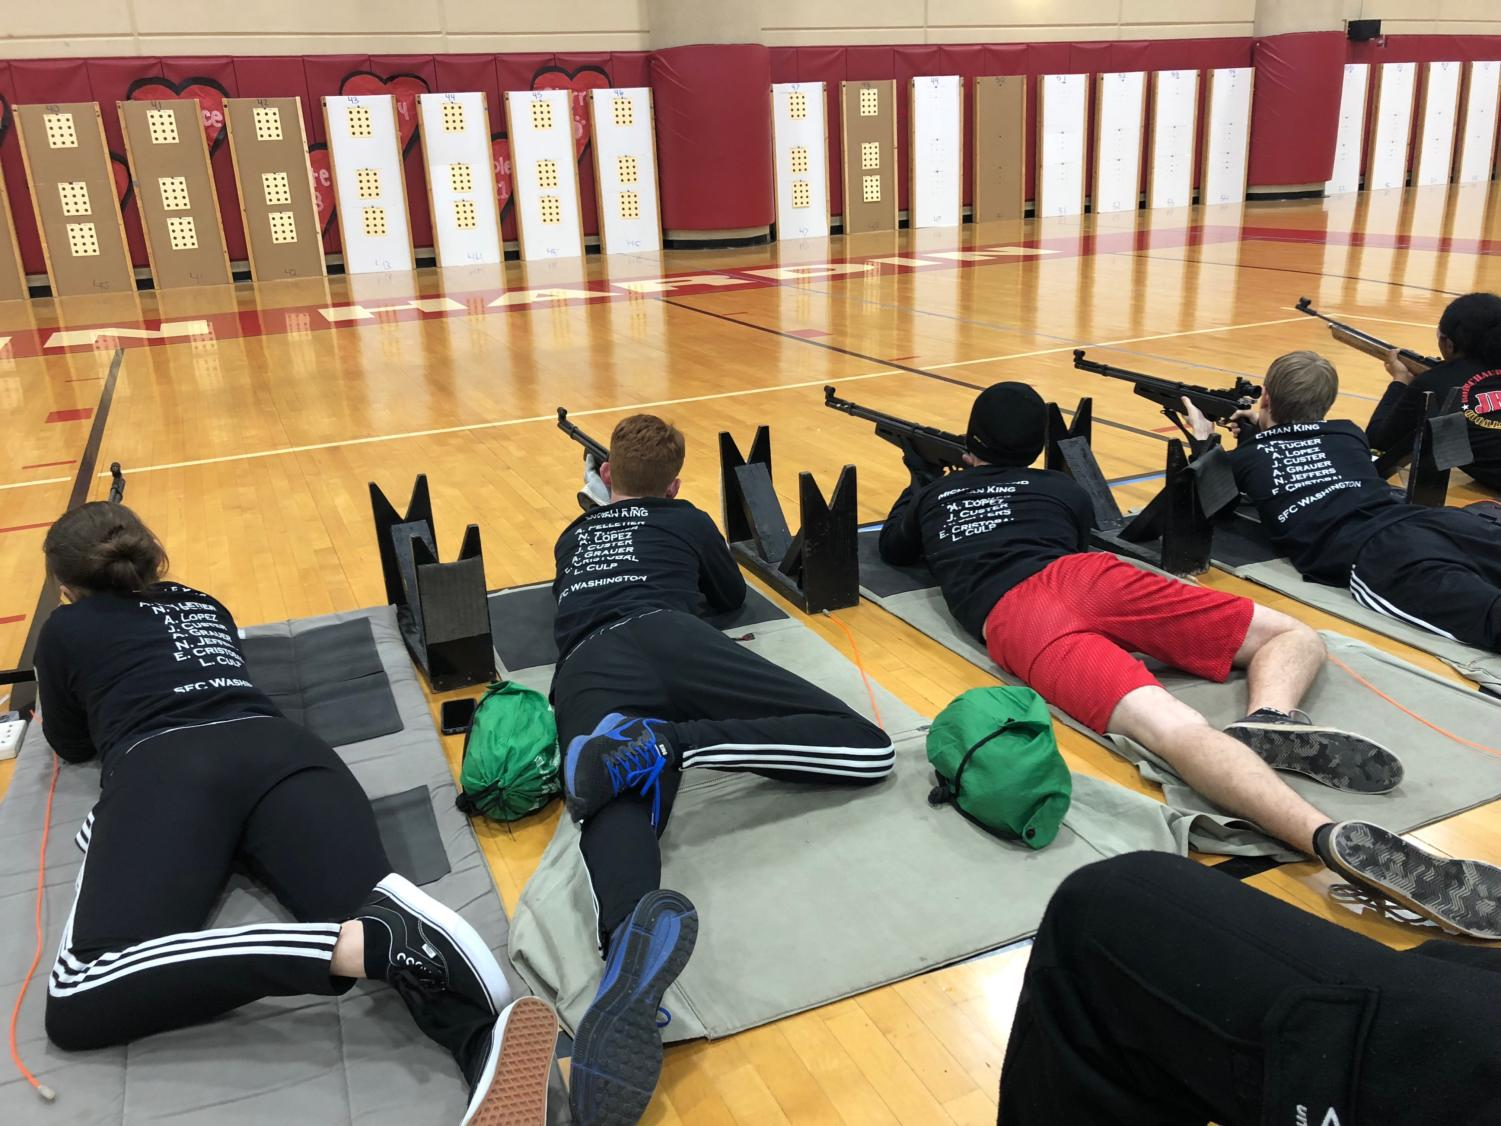 In the prone position, Michelle Bond, Ethan King, and Nathan Tucker compete at the SGM Paul. C Gray JROTC Invitational Marksmanship Competition at John Hardin High School in Fort Knox, Kentucky.